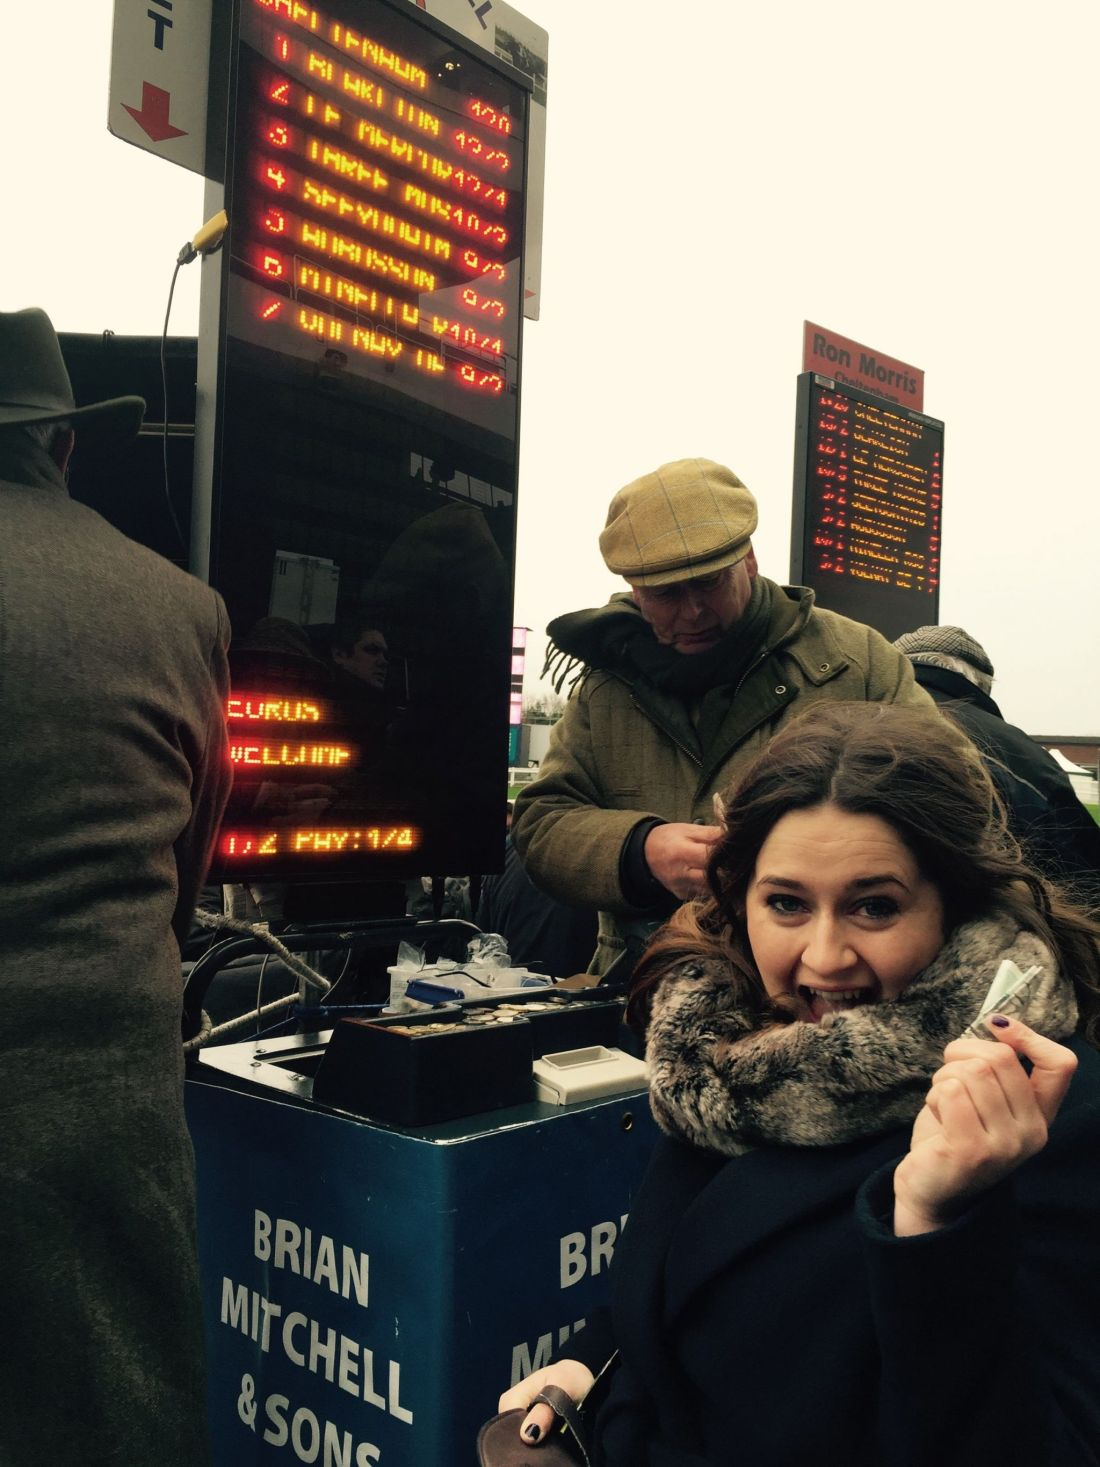 Placing bets at on New Year's Day at Cheltenham Races